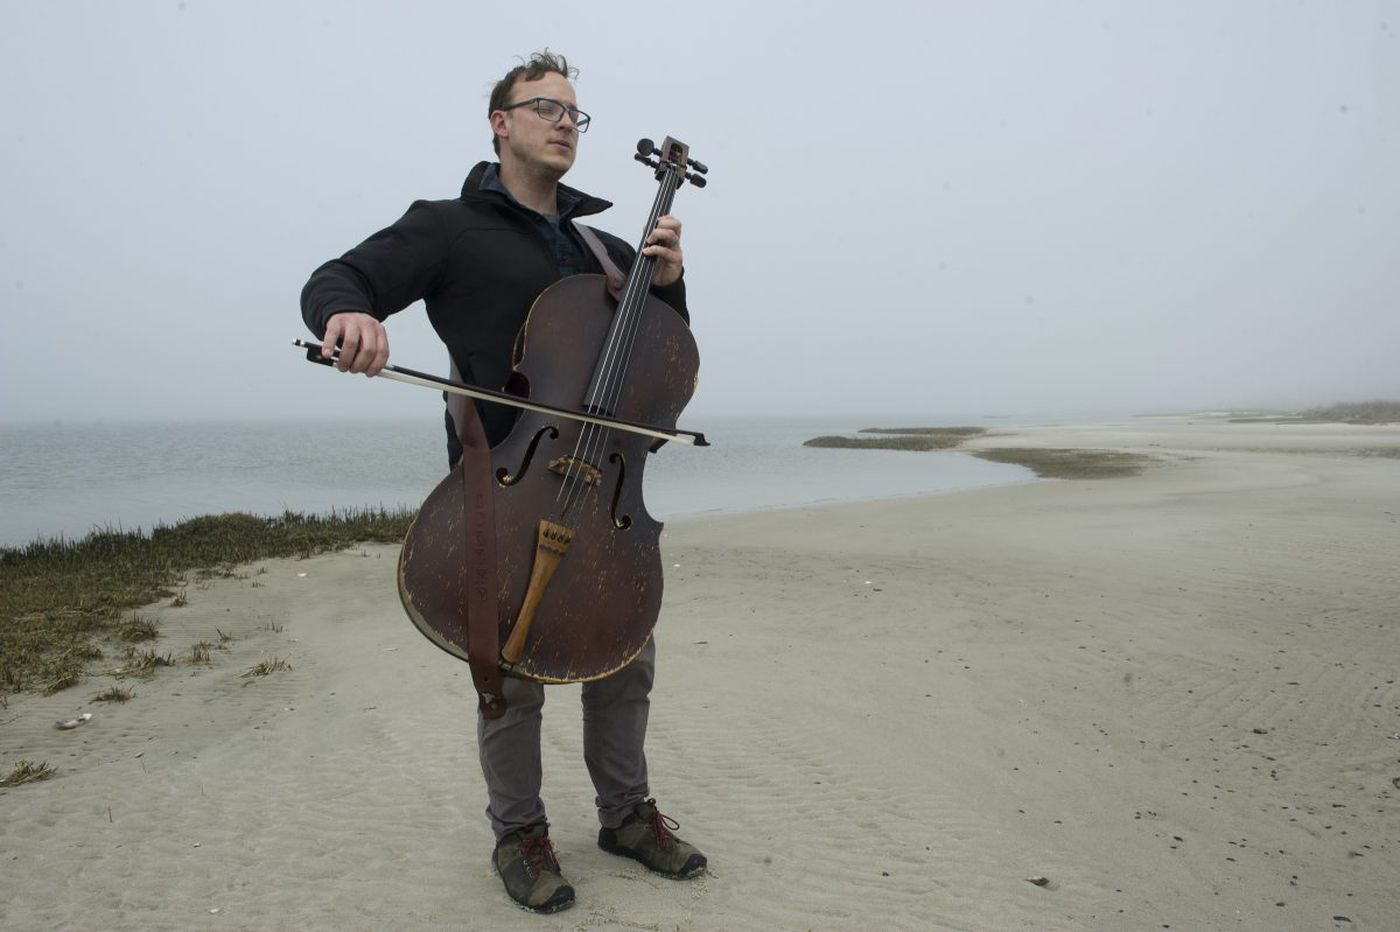 A Shore wildlife haven is a source of visual and musical inspiration